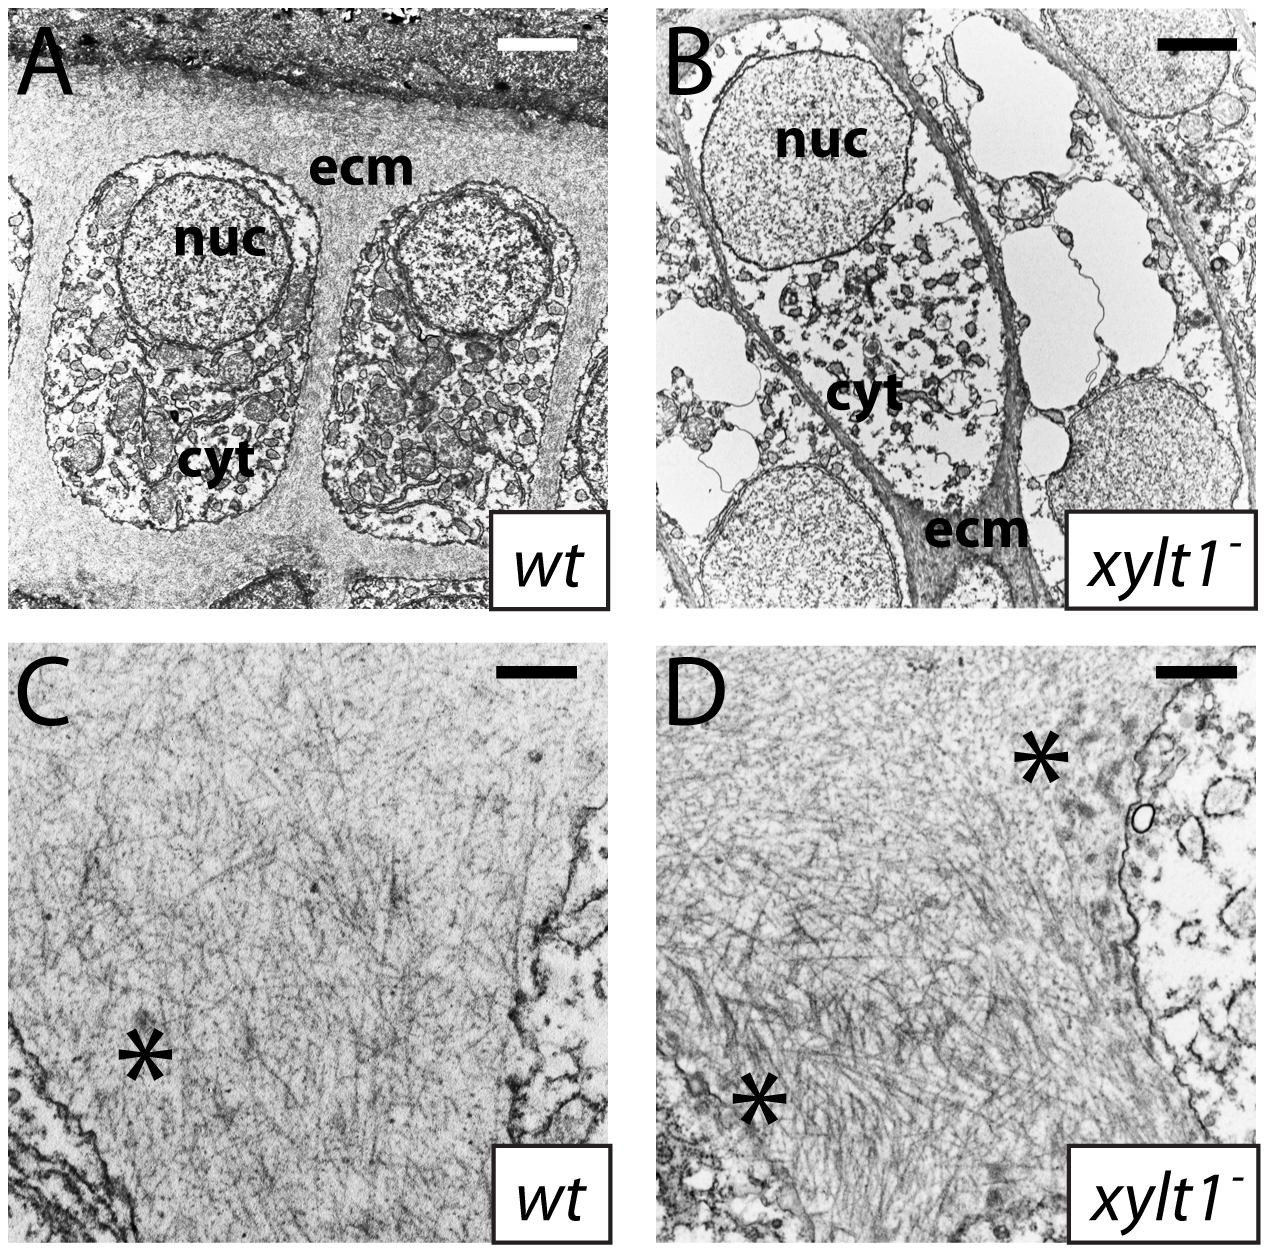 Ultrastructural evidence of premature chondrocyte hypertrophy and aberrant matrix production in <i>xylt1</i> mutants.